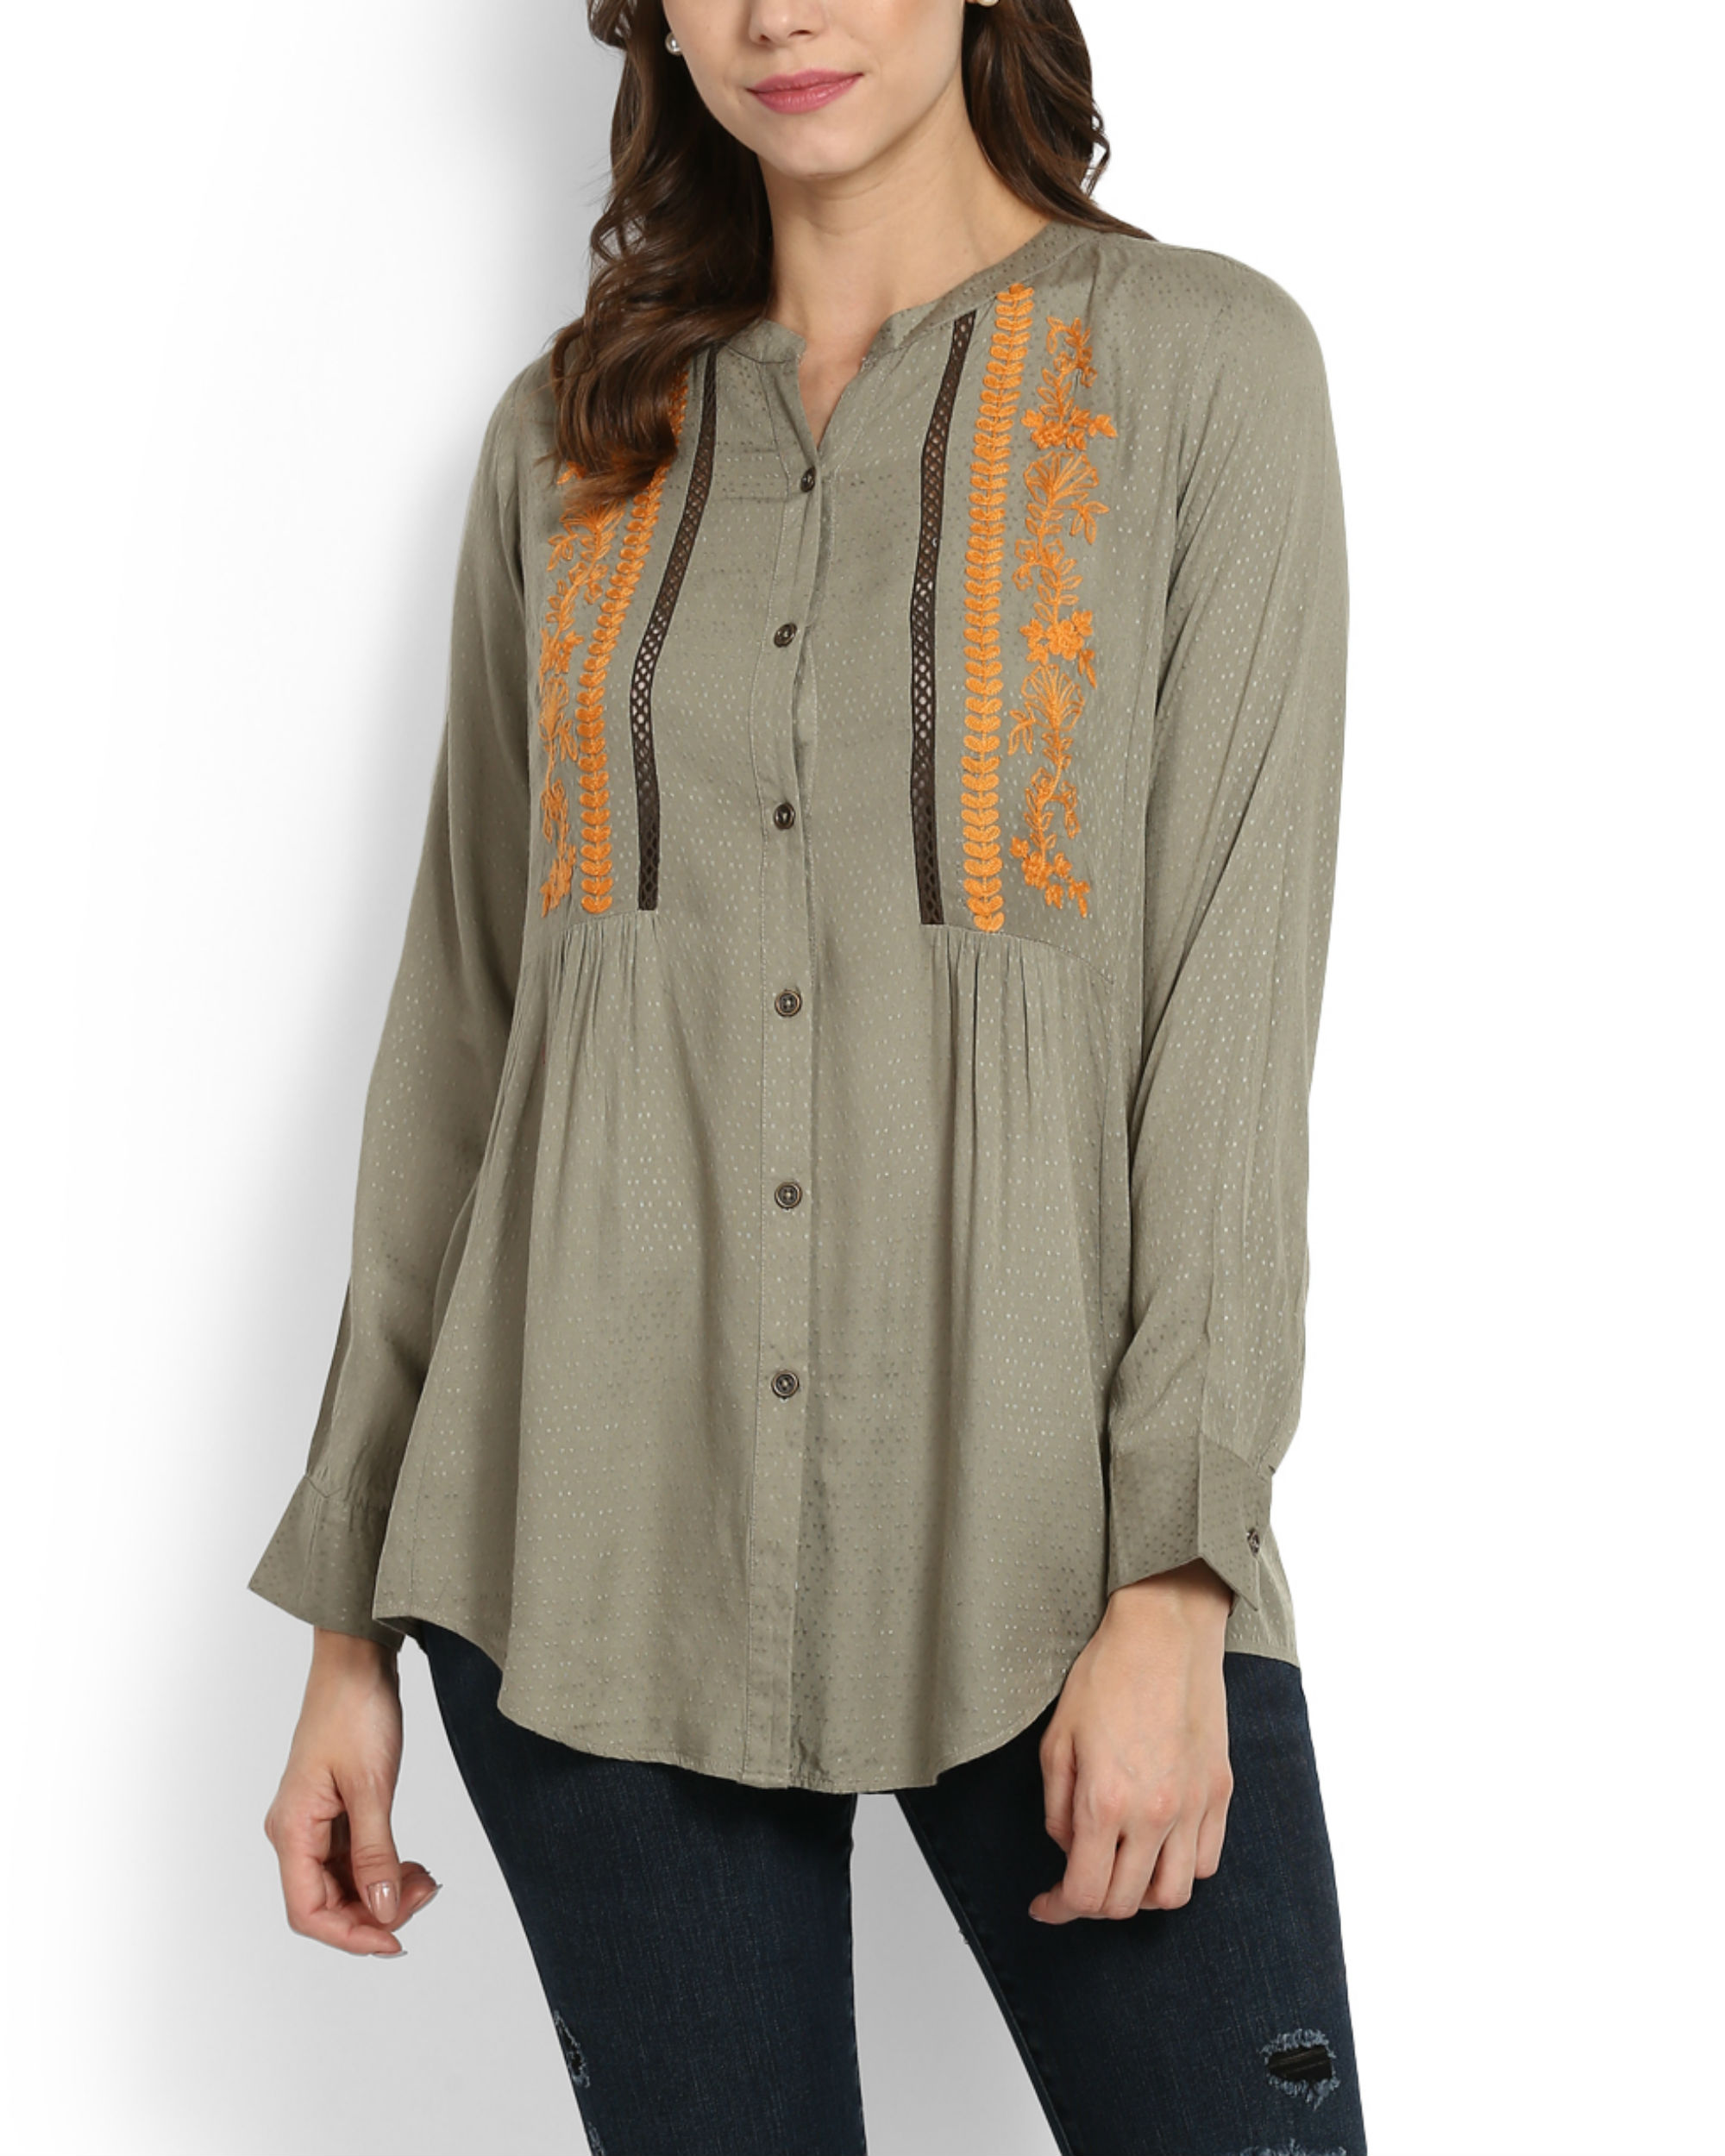 Khaki top with embroidery & lace